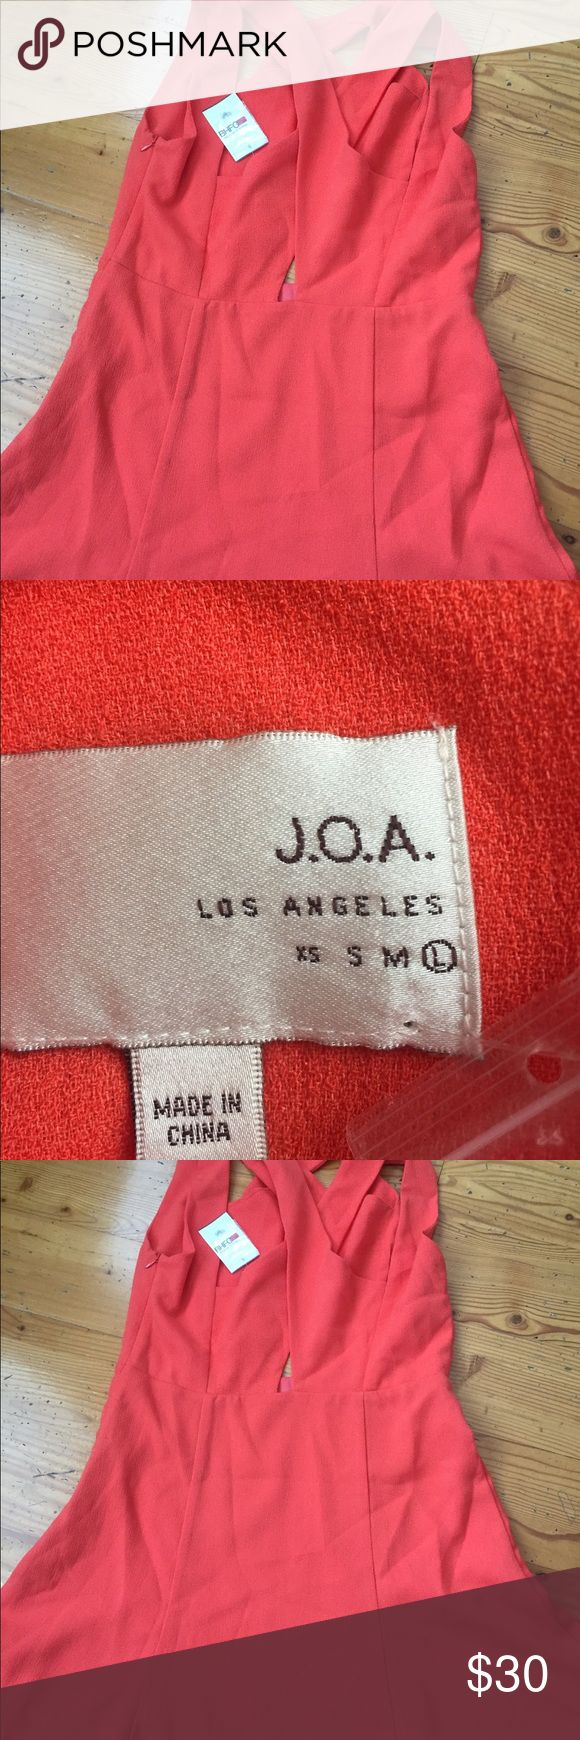 J.O.A Orange mini sun dress Sz Large New with tags, Length 34, chest 20, criss  cross cut out , coral orange, mini dress. J.O.A Dresses Mini